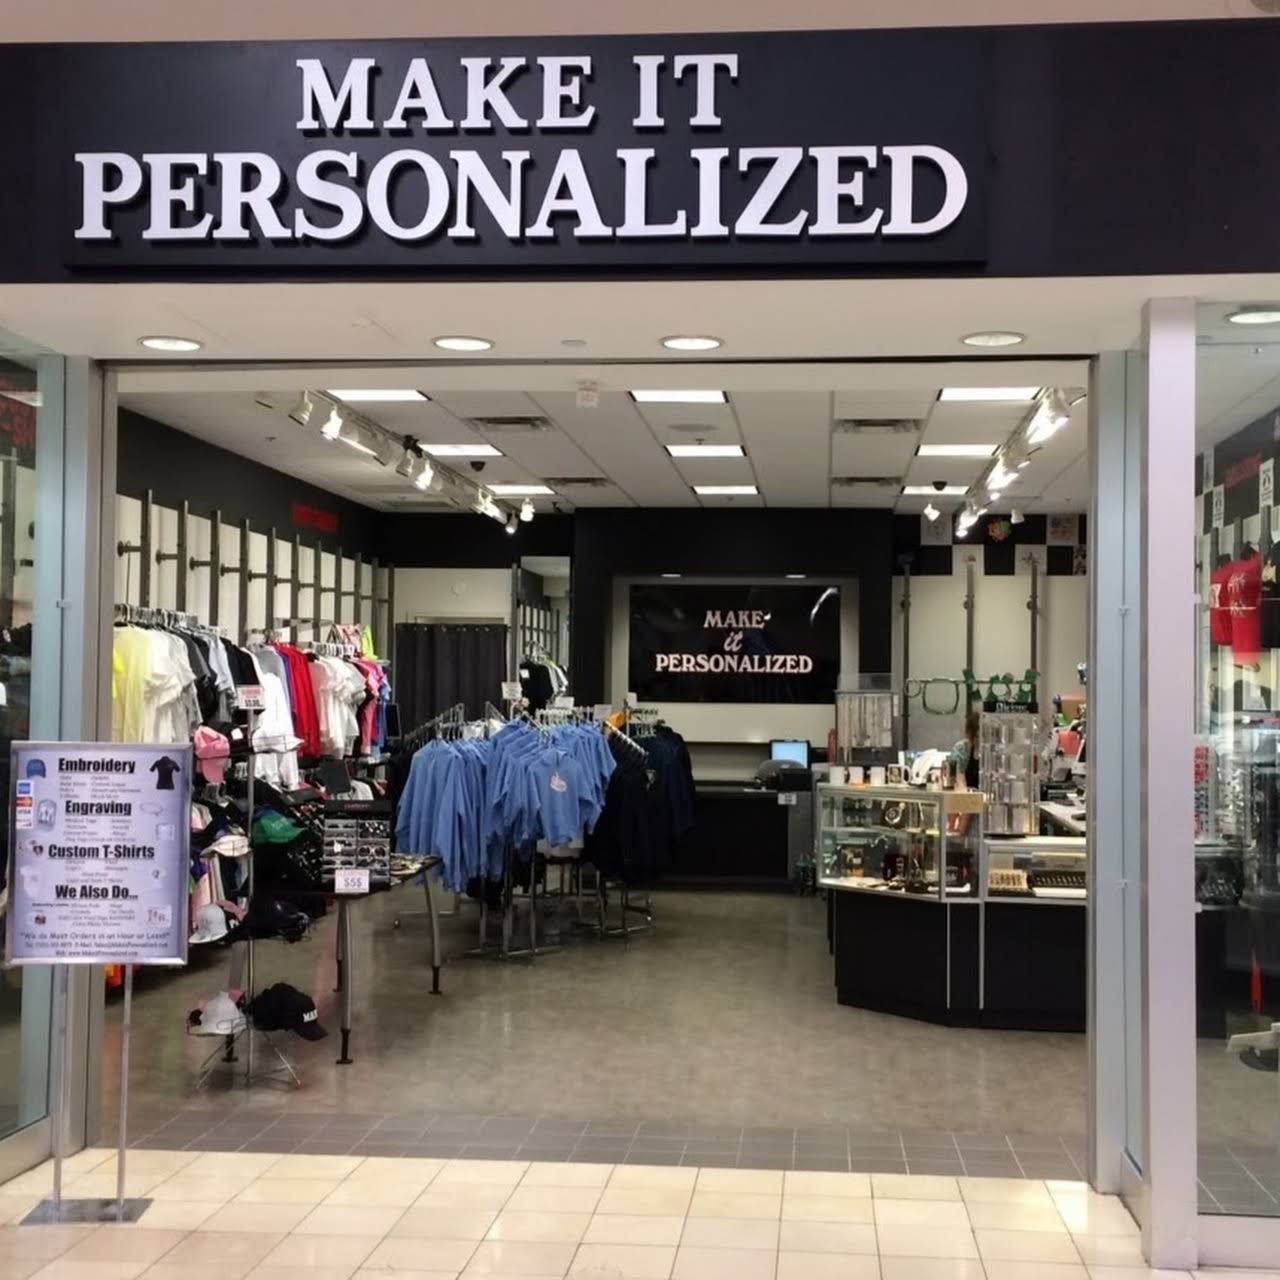 Make It Personalized Custom T Shirts Embroidery Engraving Laser